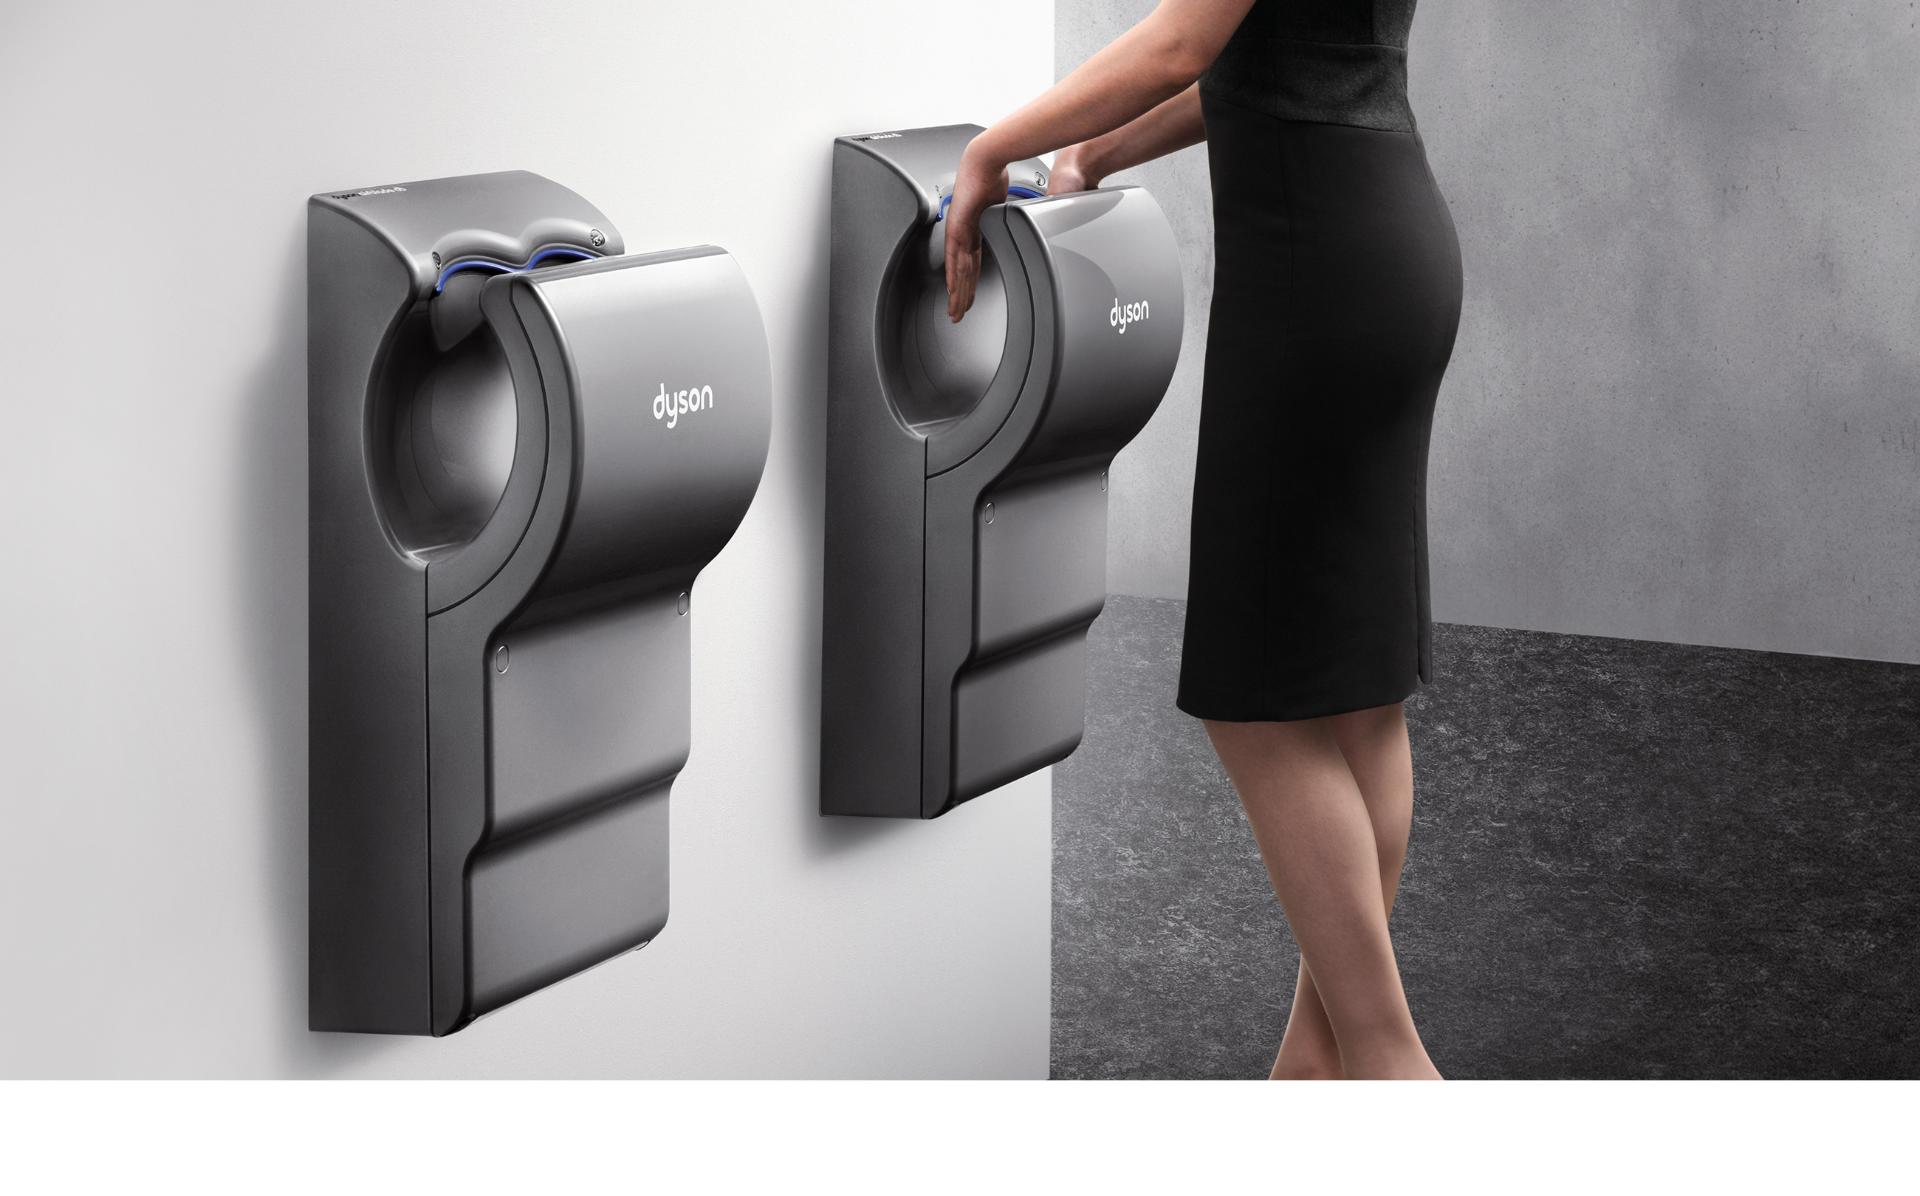 Woman using the Dyson Airblade dB